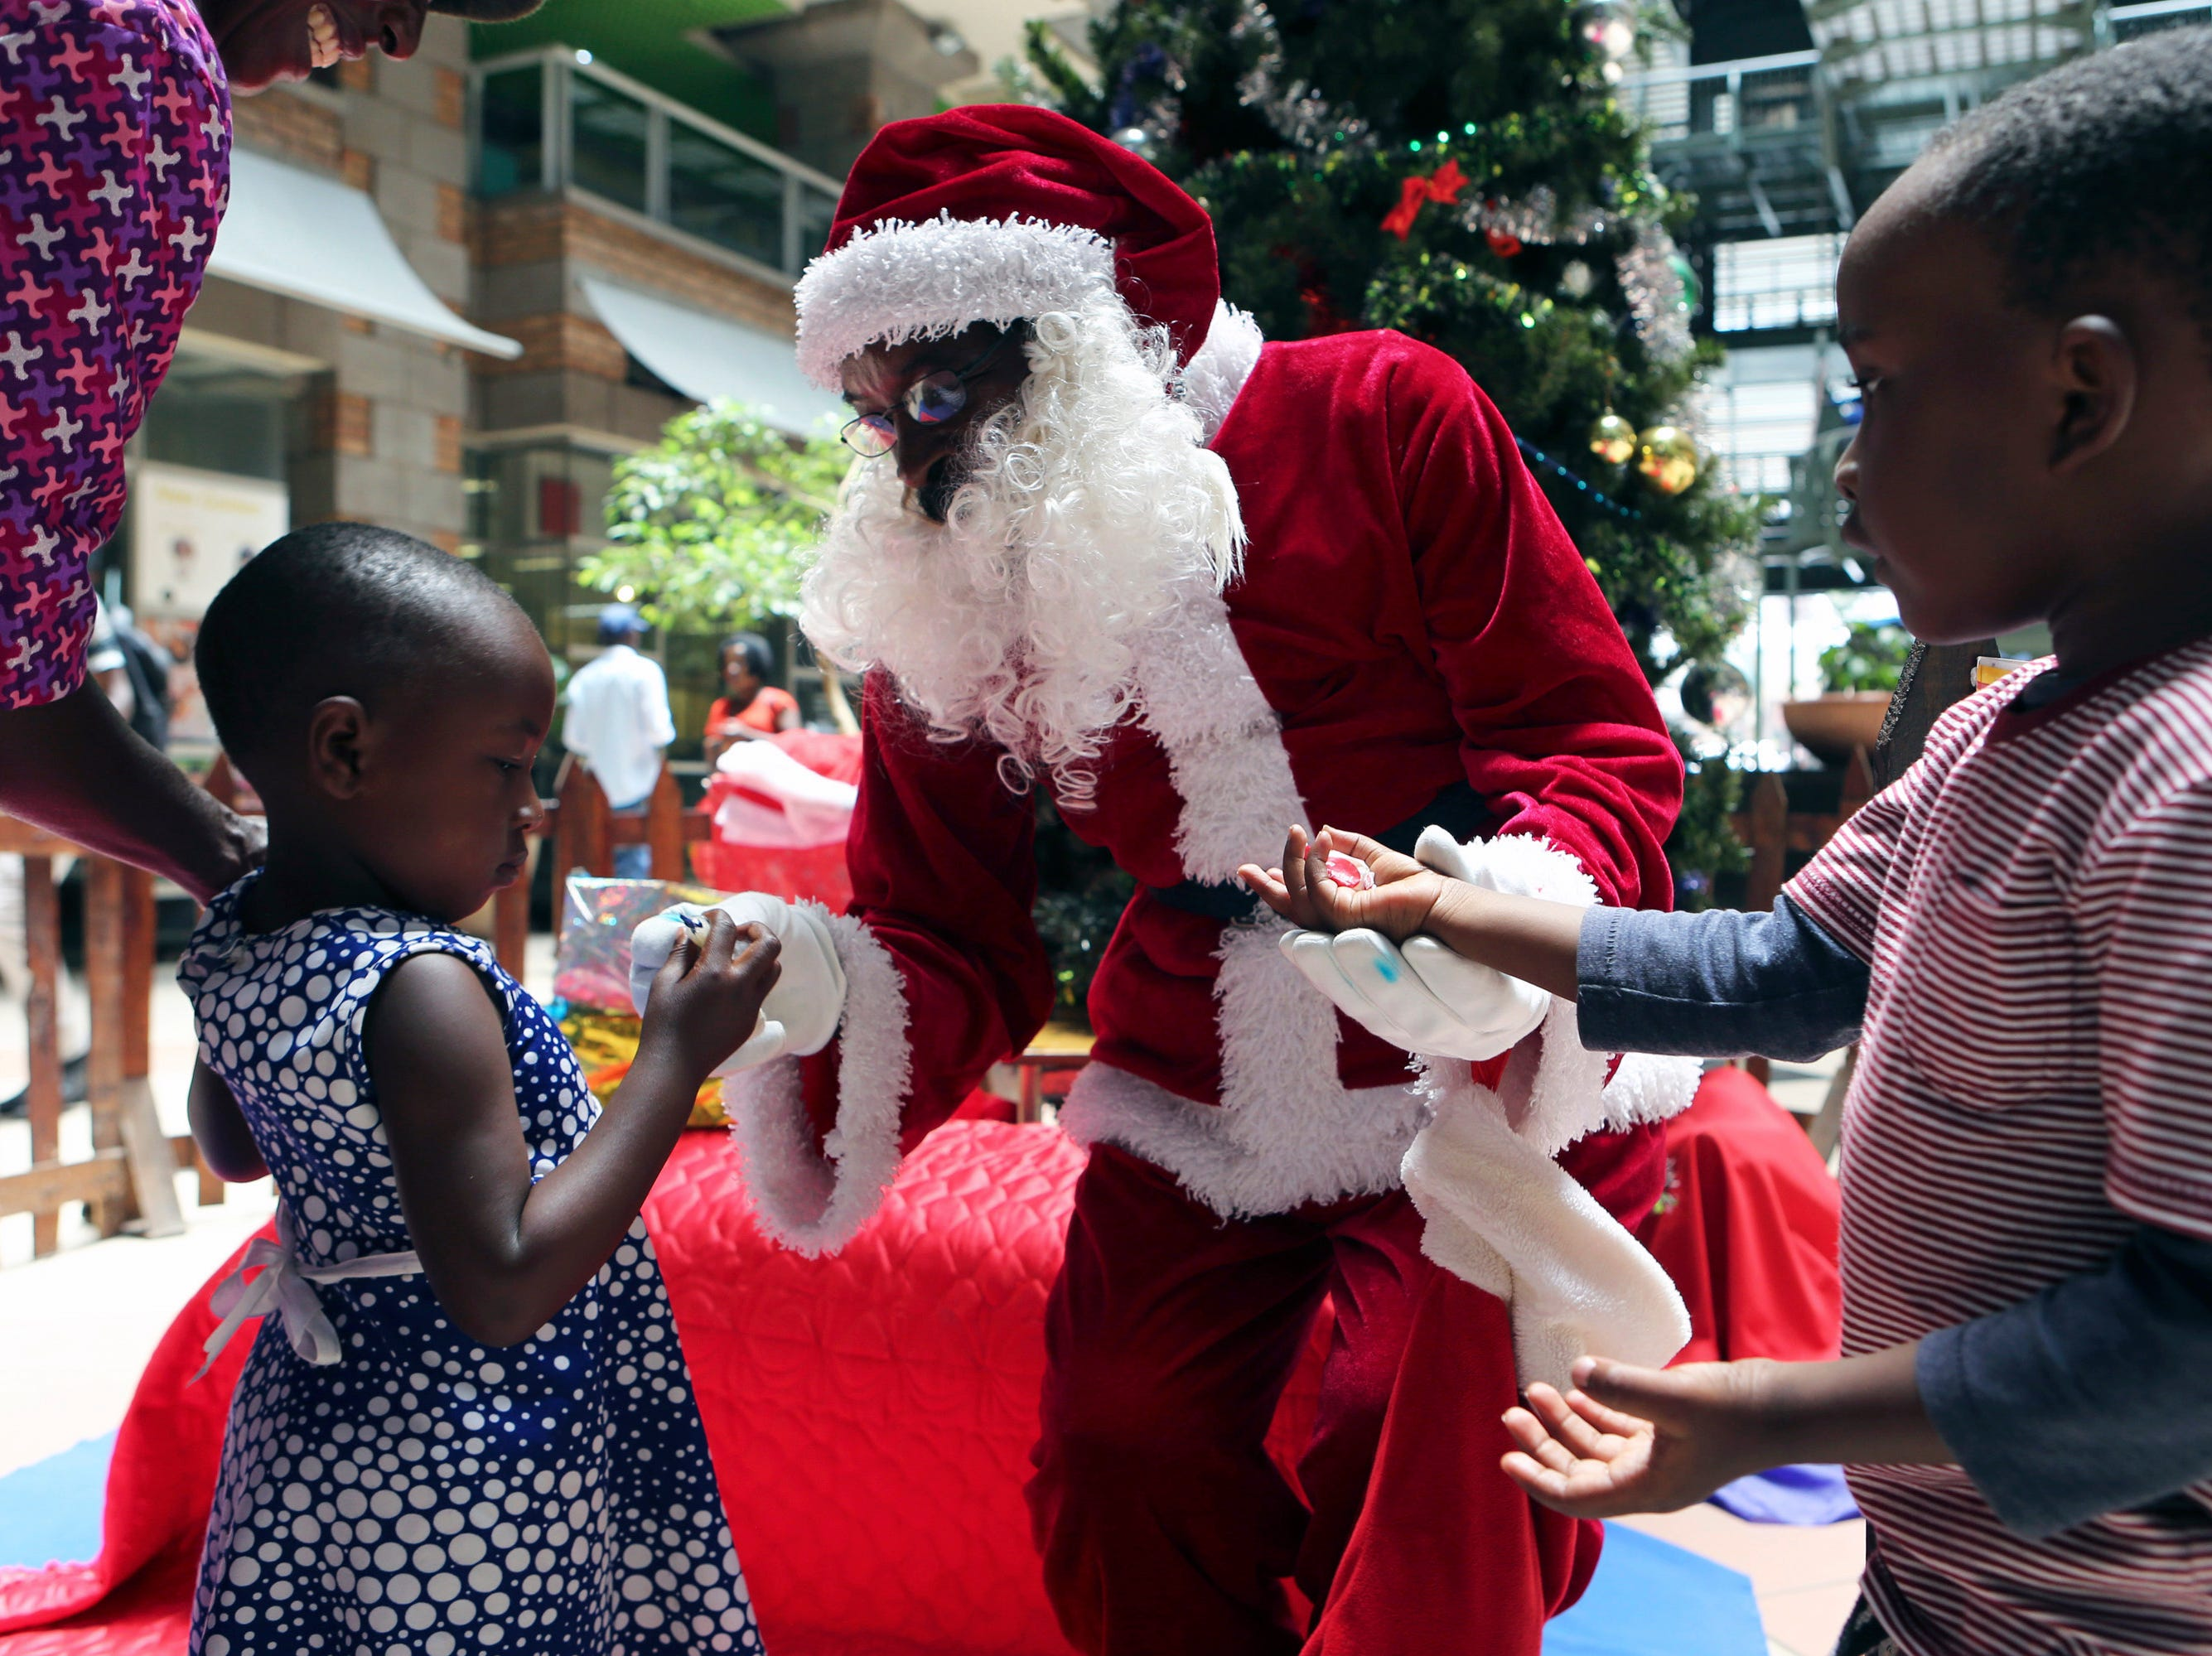 Santa Claus gives sweets to children at a shopping mall in Harare on Dec, 21, 2018. The Christmas lights are up in Zimbabwe's capital but the mood is less than festive as the country grapples with an economic crisis that prevents many families from enjoying the holiday season. Zimbabwe is experiencing its worst economic meltdown in a decade.